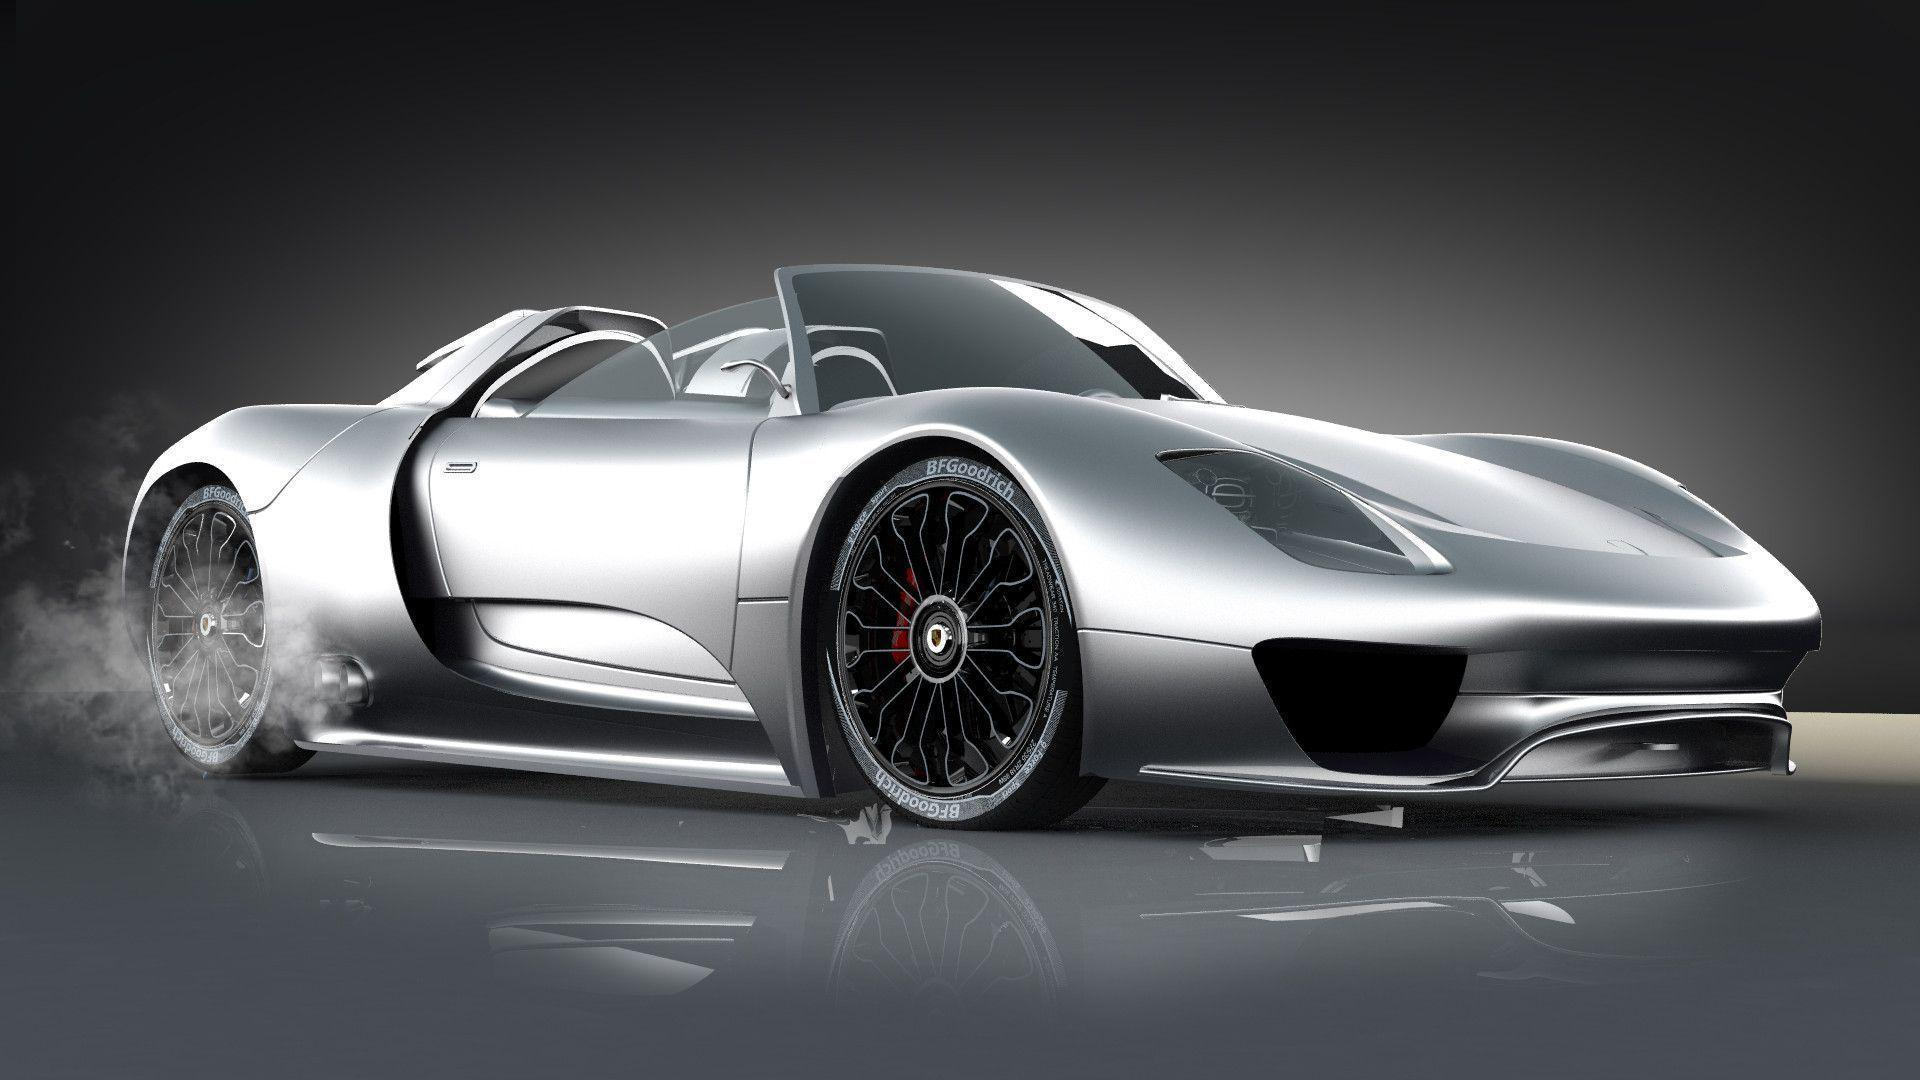 Spyder,car, Sports Cars, Super Sports Cars | HD Wallpapers